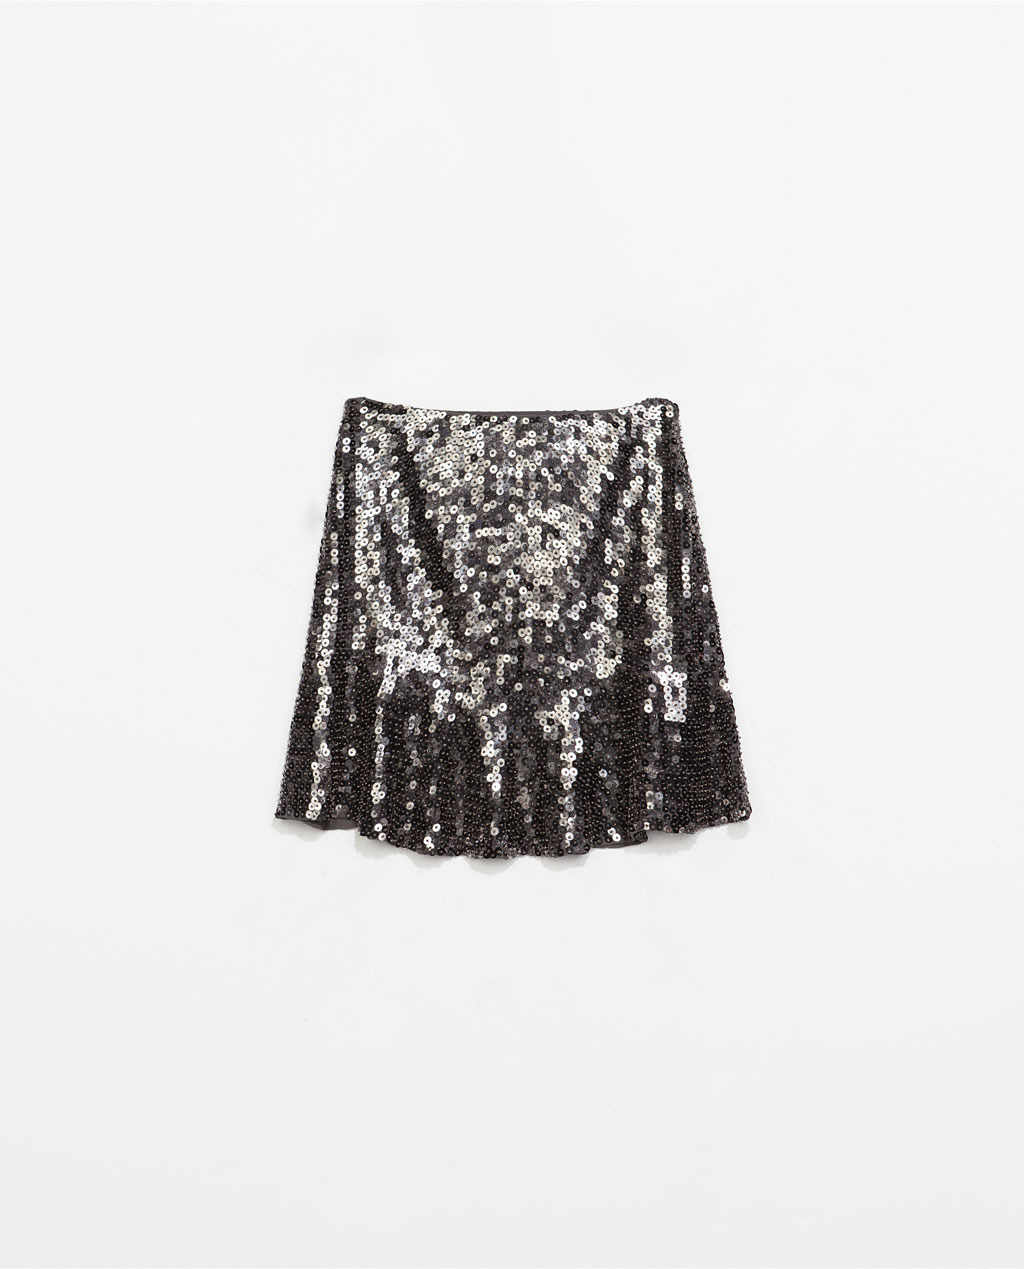 Embroidered Sequinned Flared Skirt - length: mini; pattern: plain; fit: loose/voluminous; waist: mid/regular rise; occasions: evening; style: mini skirt; pattern type: fabric; texture group: other - light to midweight; embellishment: sequins; trends: summer sparkle, shimmery metallics; predominant colour: pewter; season: s/s 2014